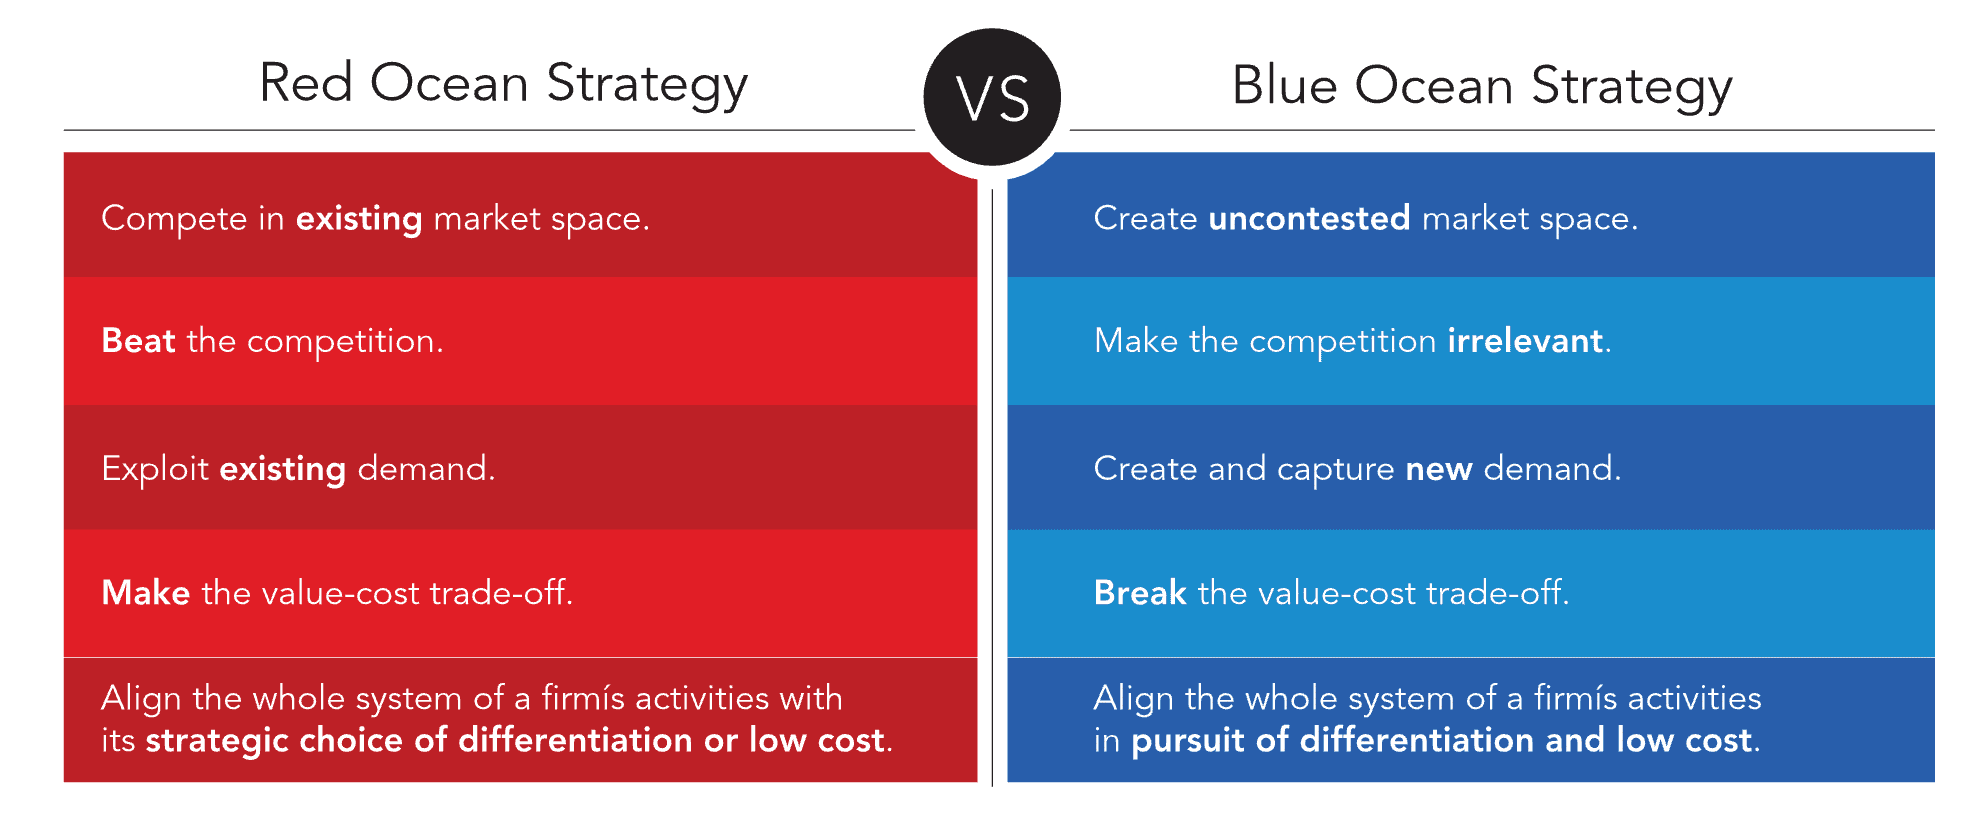 Red Ocean Strategy vs Blue Ocean Strategy